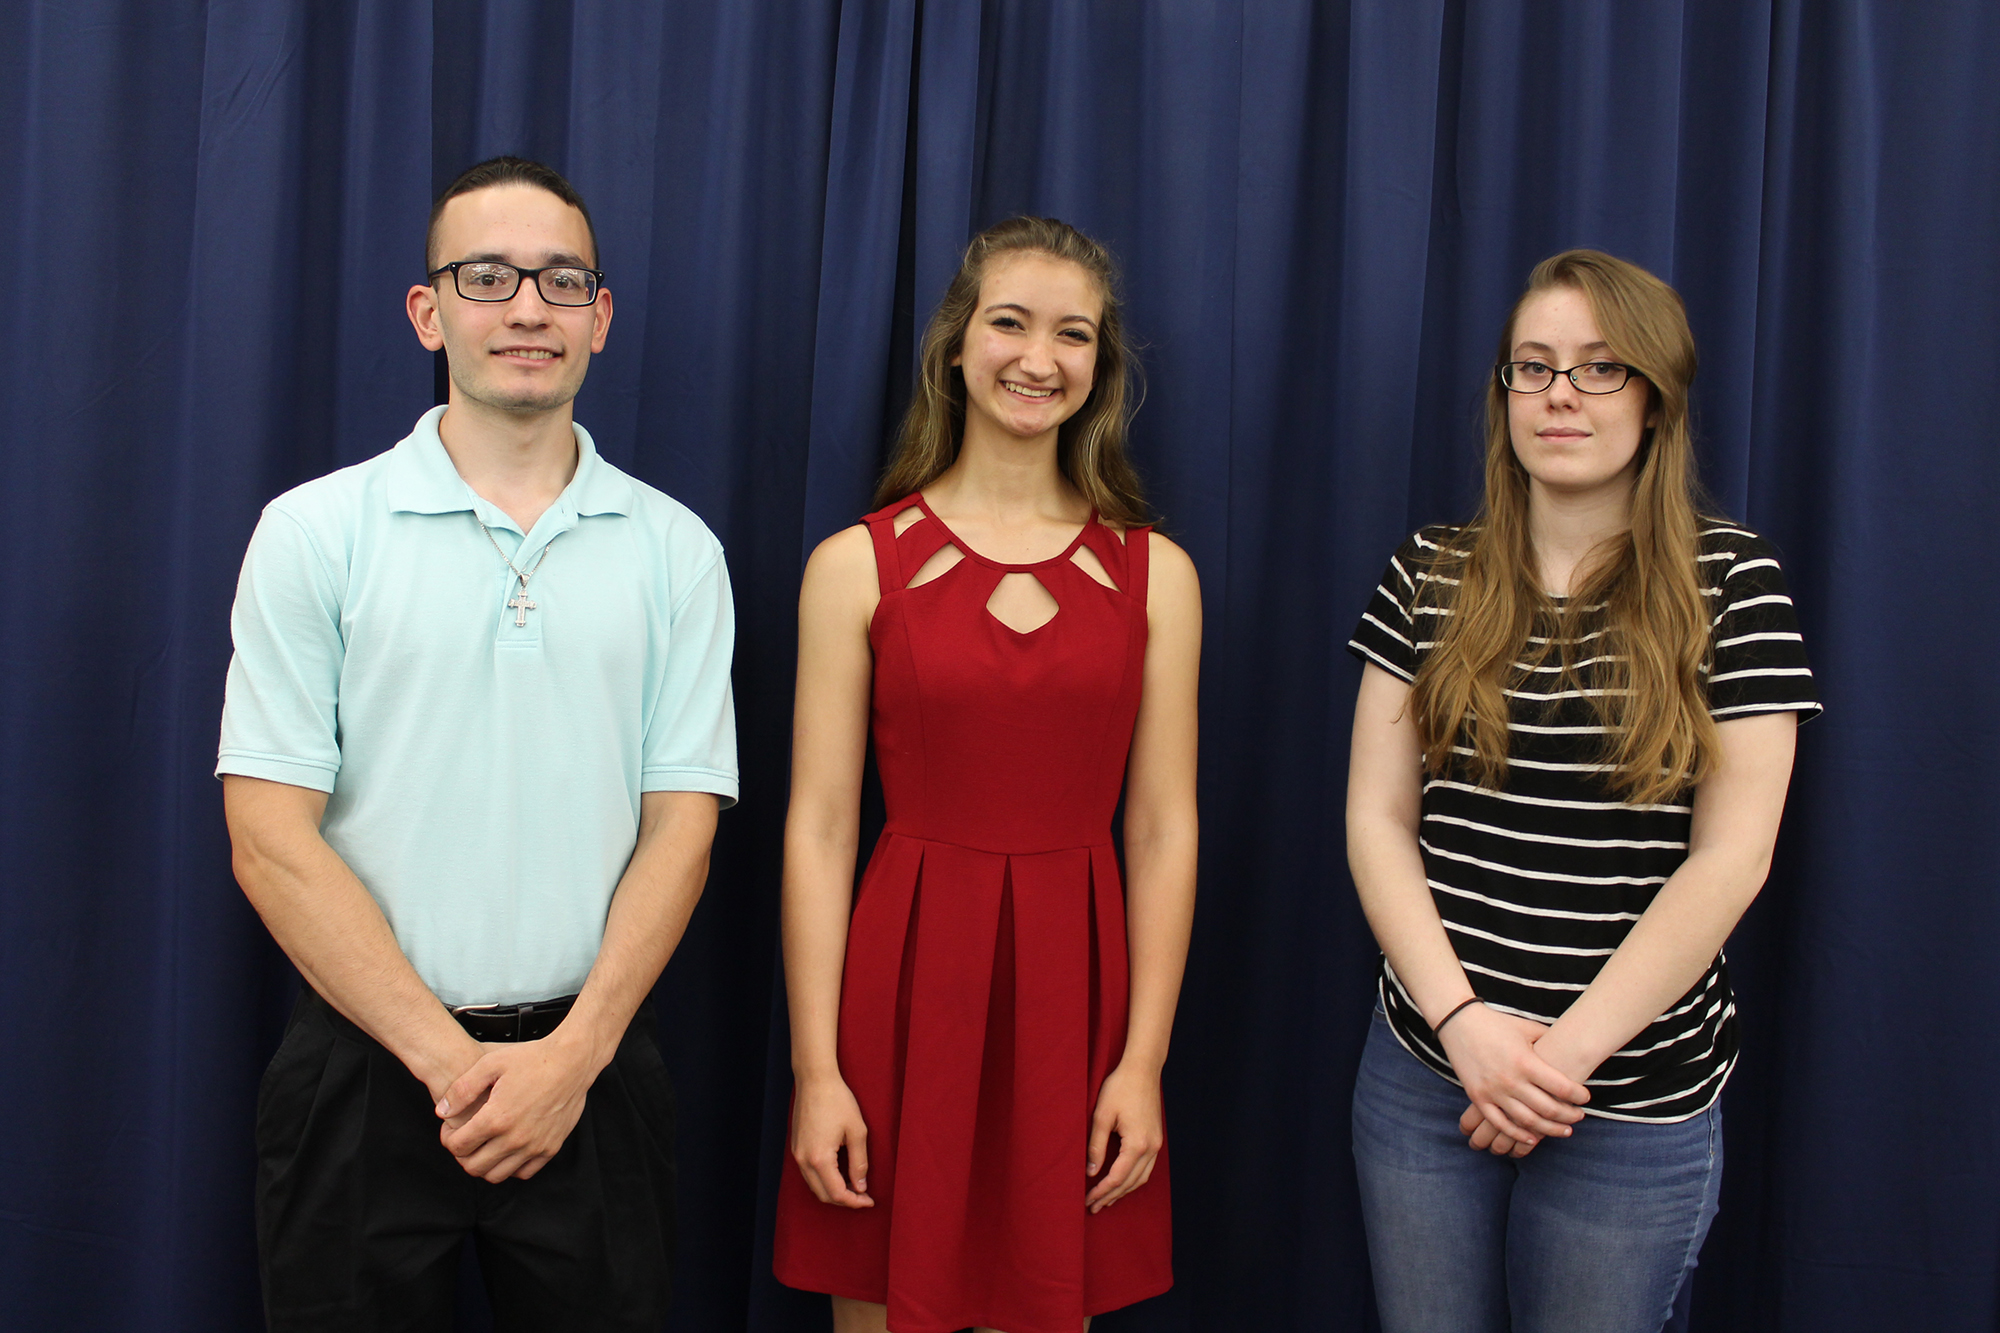 Ulster BOCES Students Honored for Scholastic Achievement